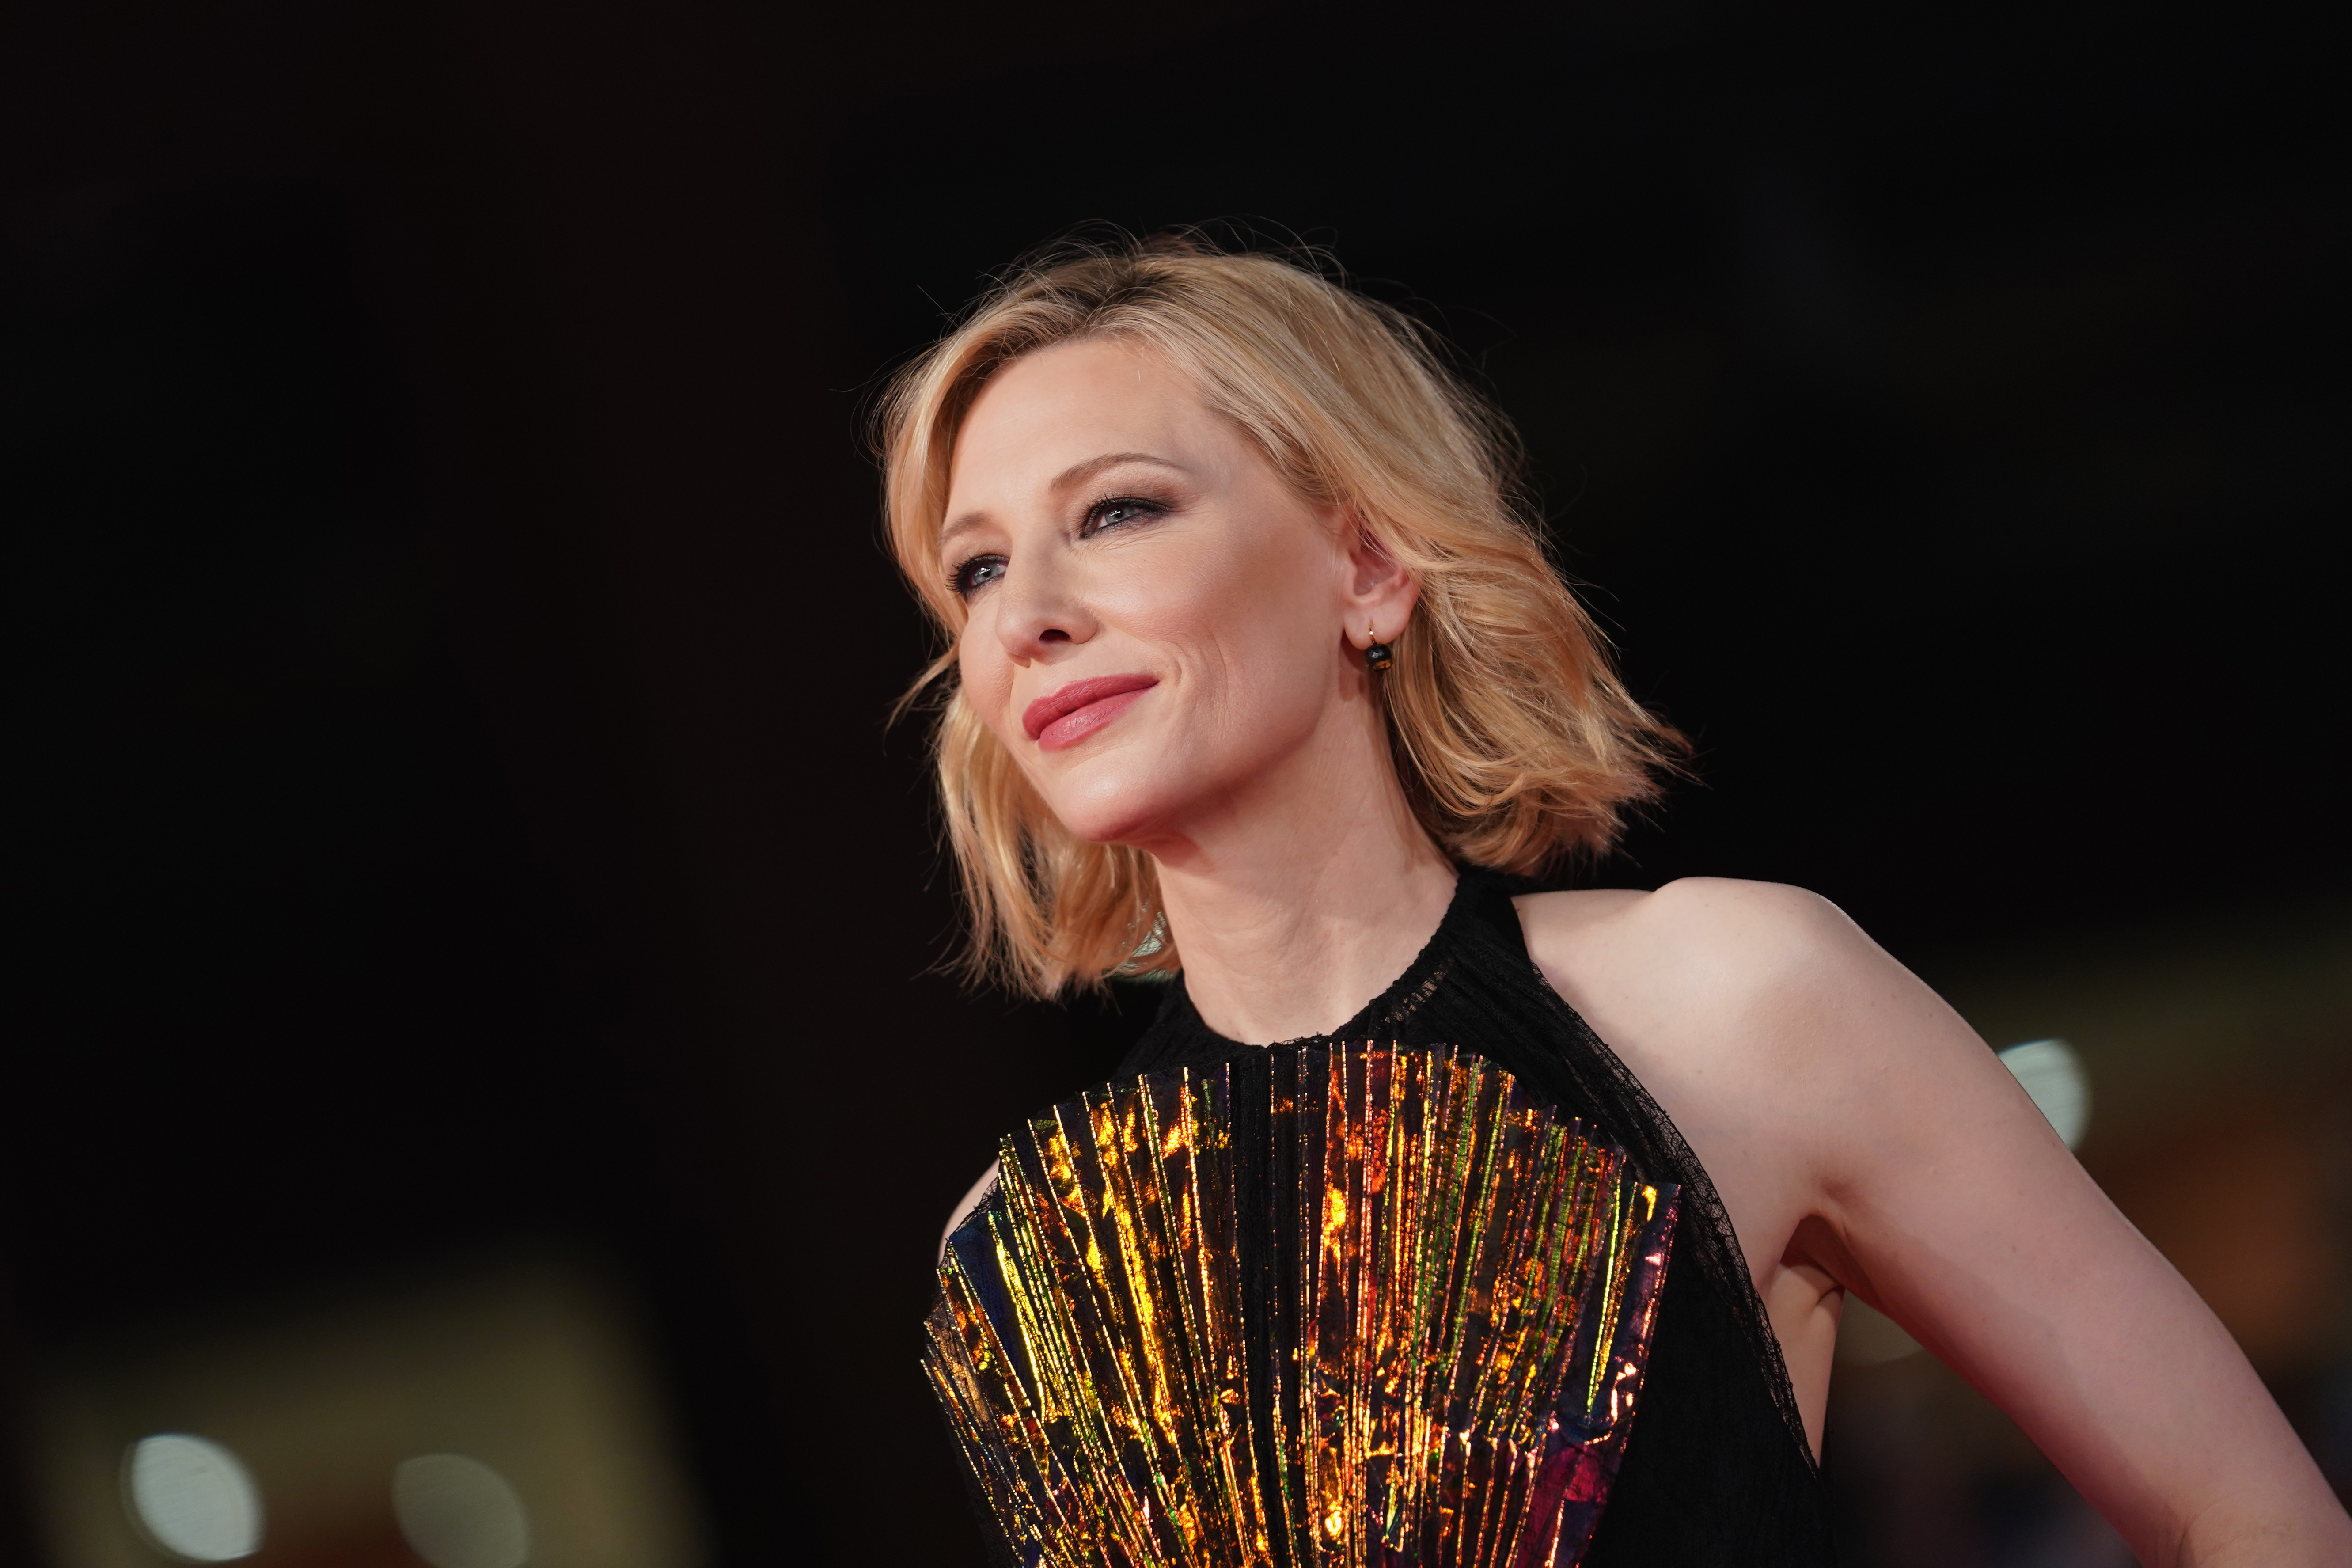 Look at you, ey! Shiny Girl!   Cate blanchett, Actresses